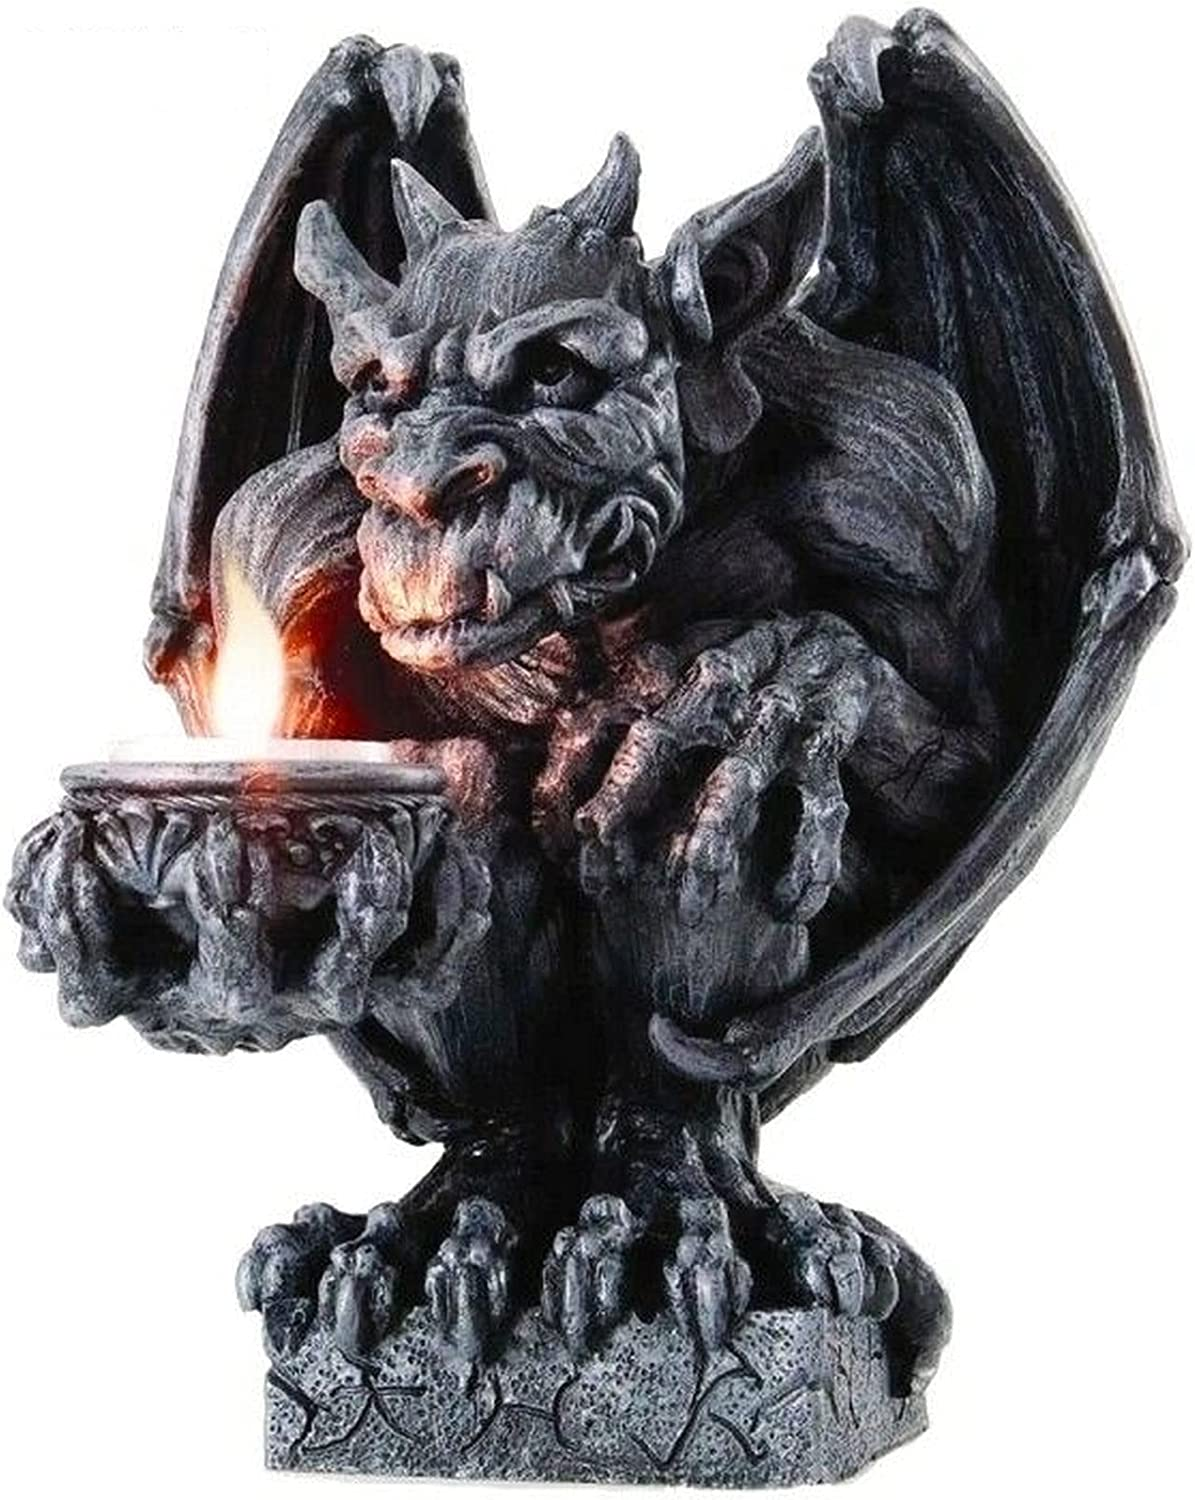 New Gothic Squatting Candleholder Max 81% OFF Statue Ranking TOP8 Desktop 8